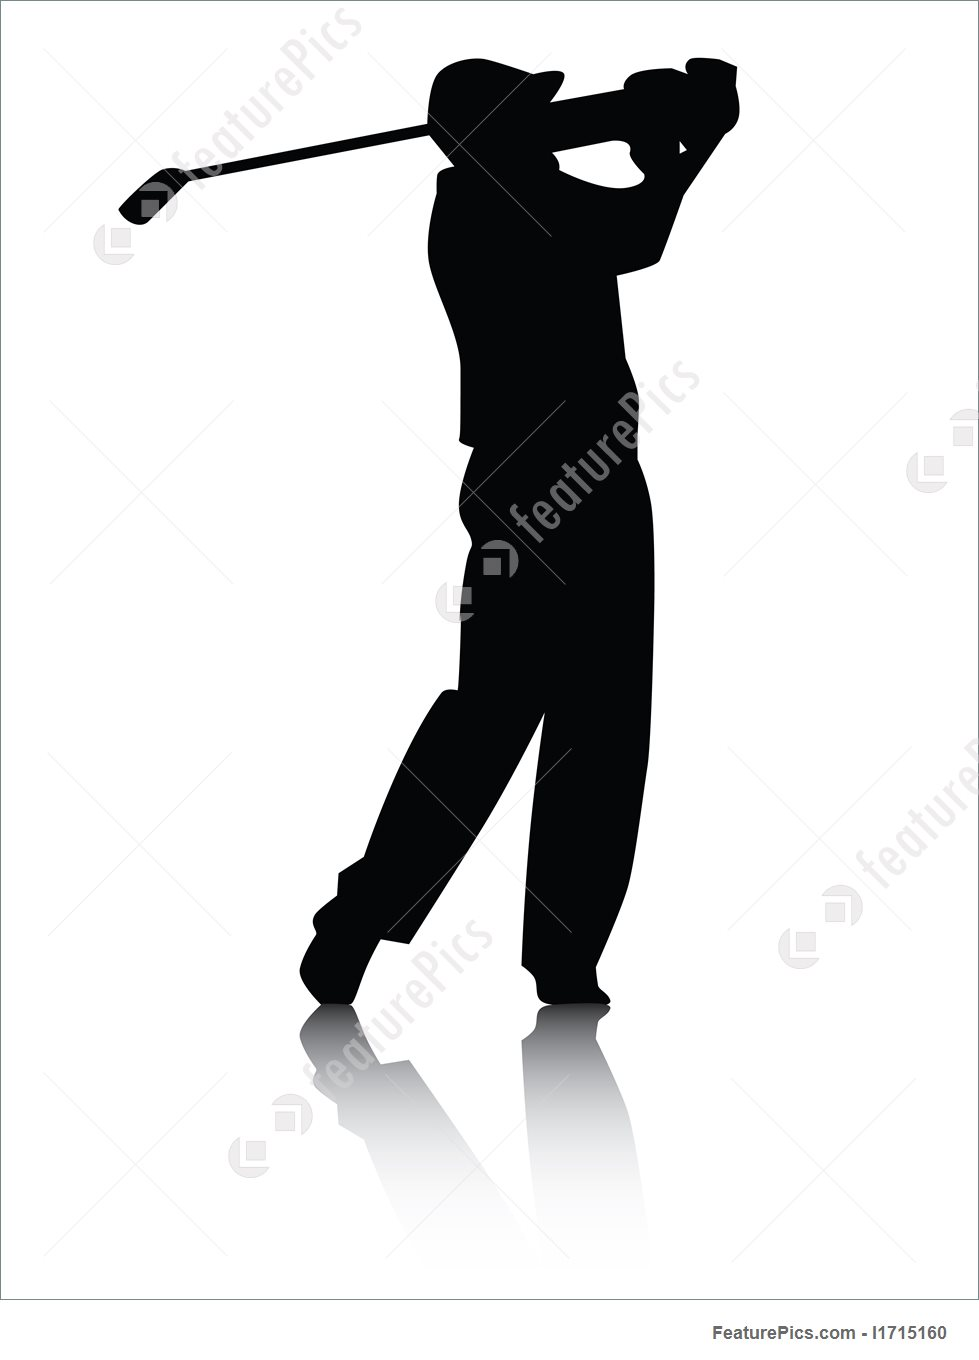 979x1360 Sports And Recreation Golfer Silhouette With Shadow